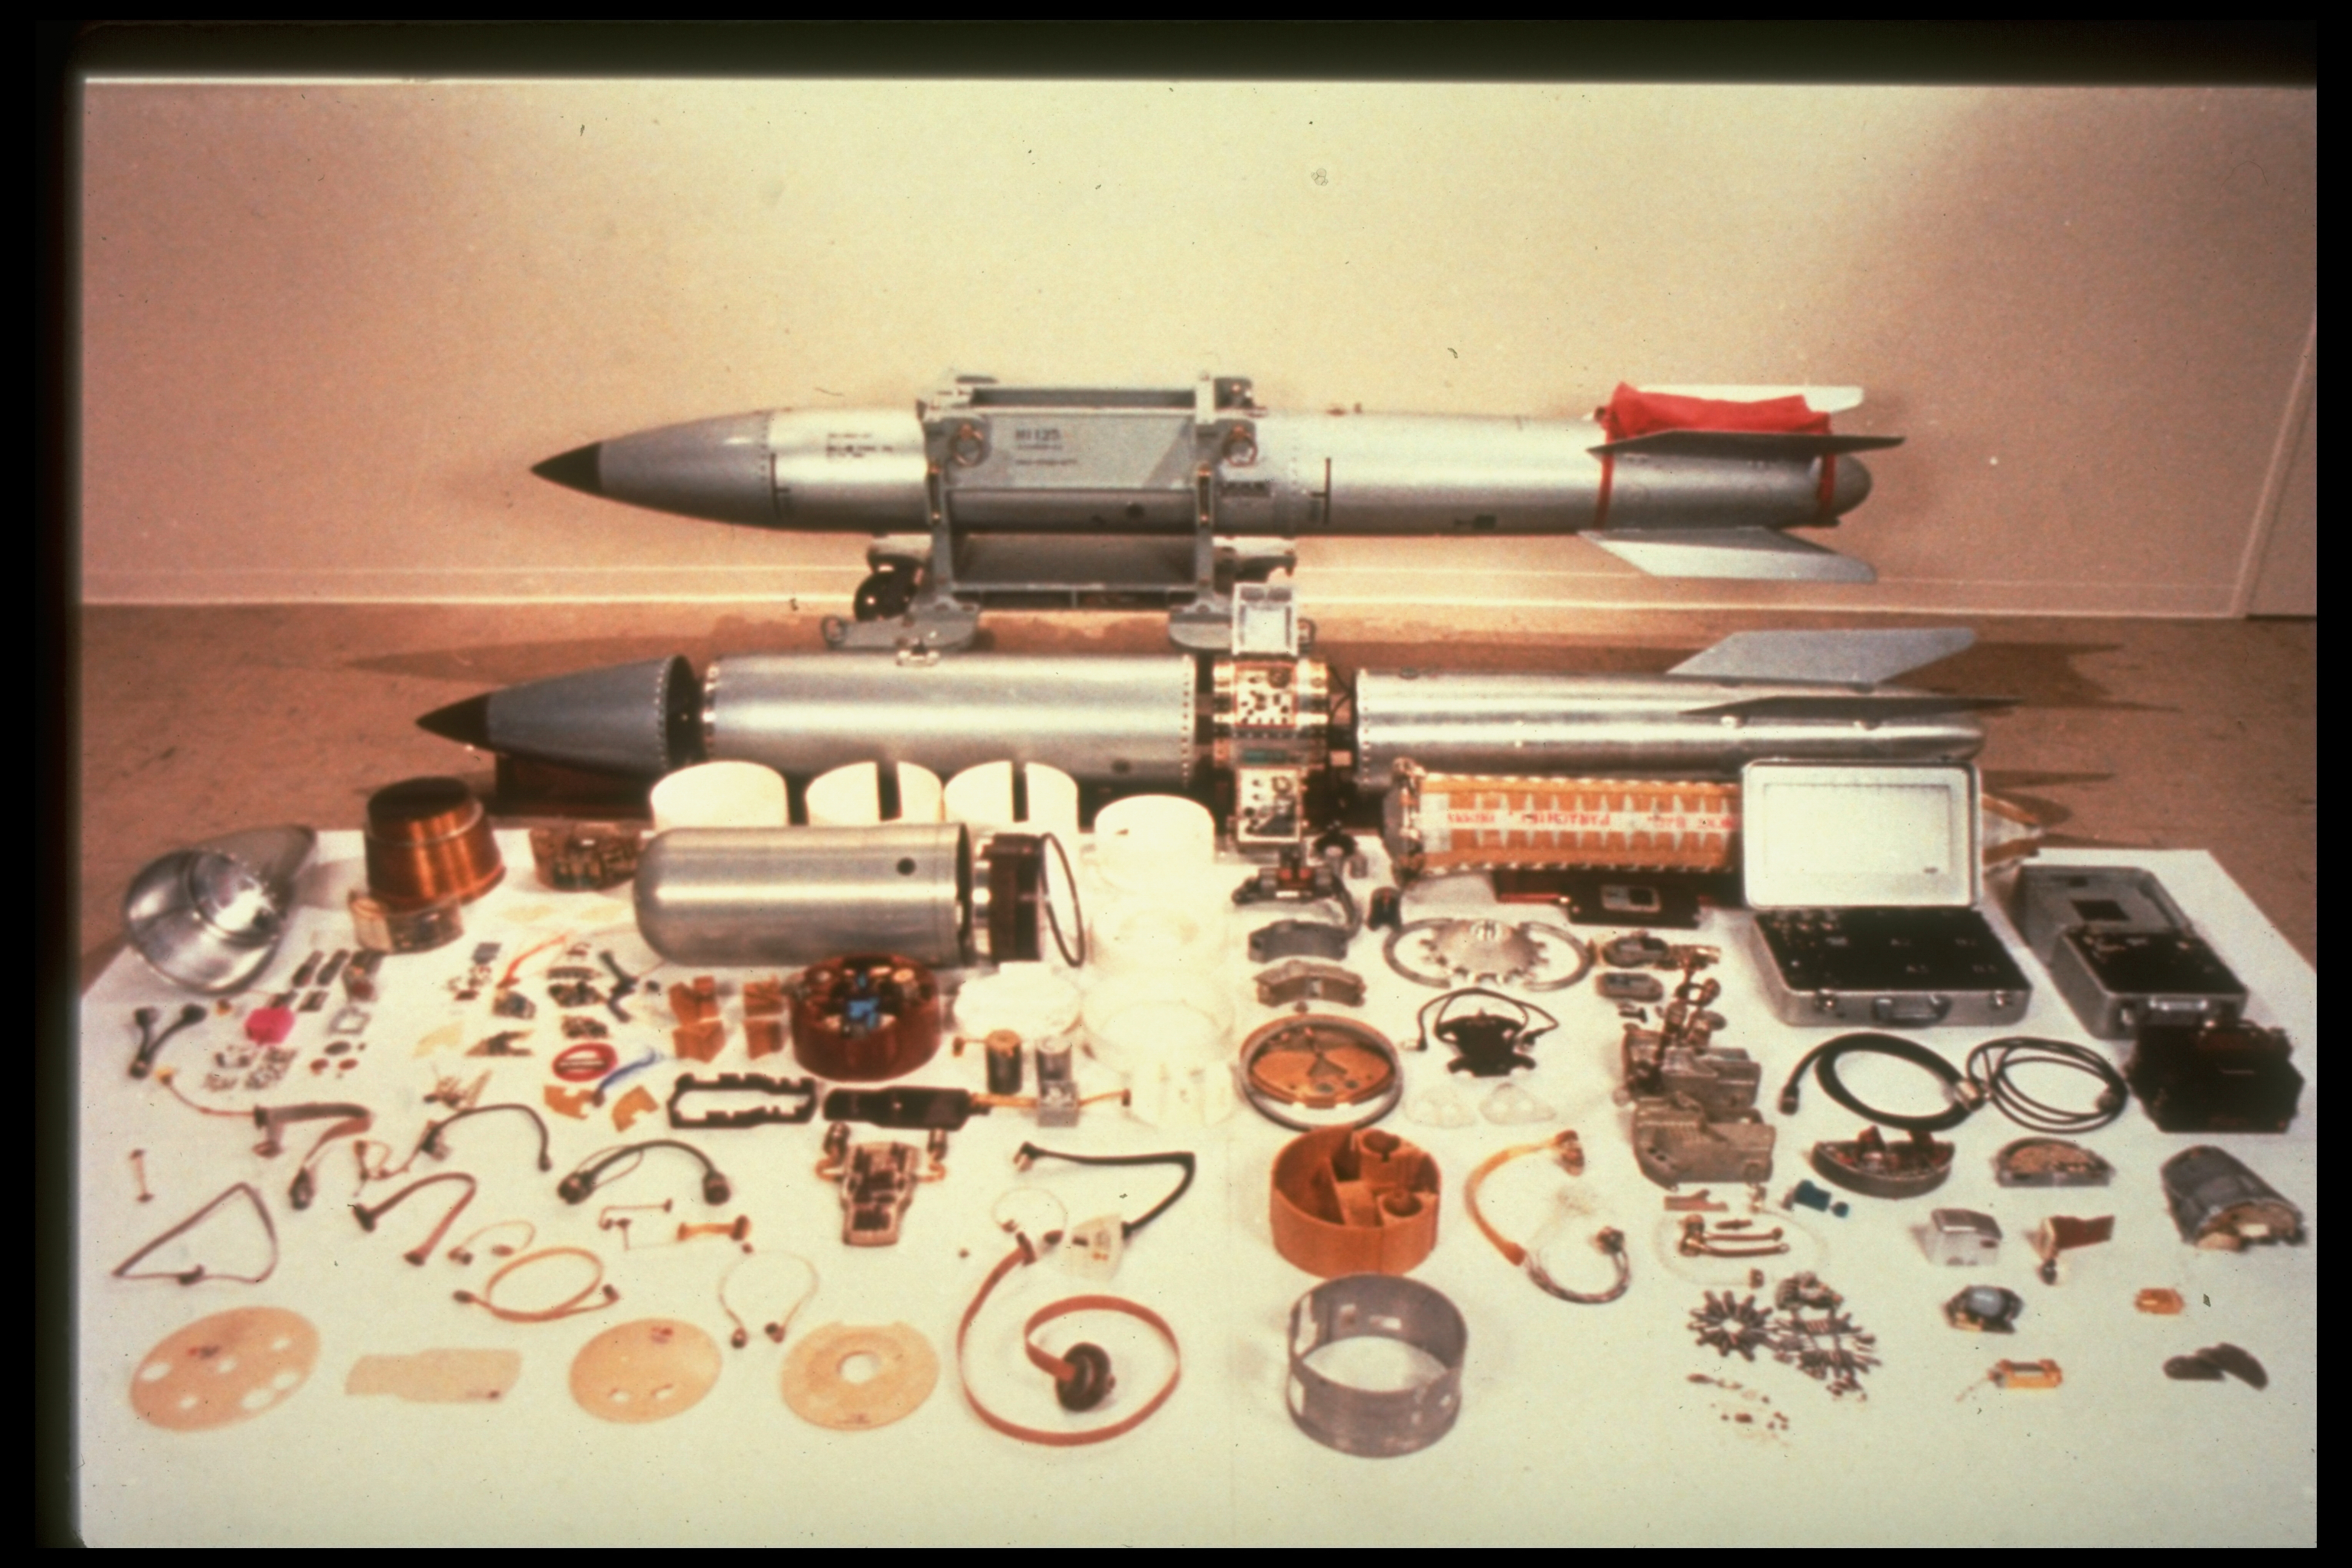 Nuclear weapons, like this U.S. B61 bomb, contain thousands of parts